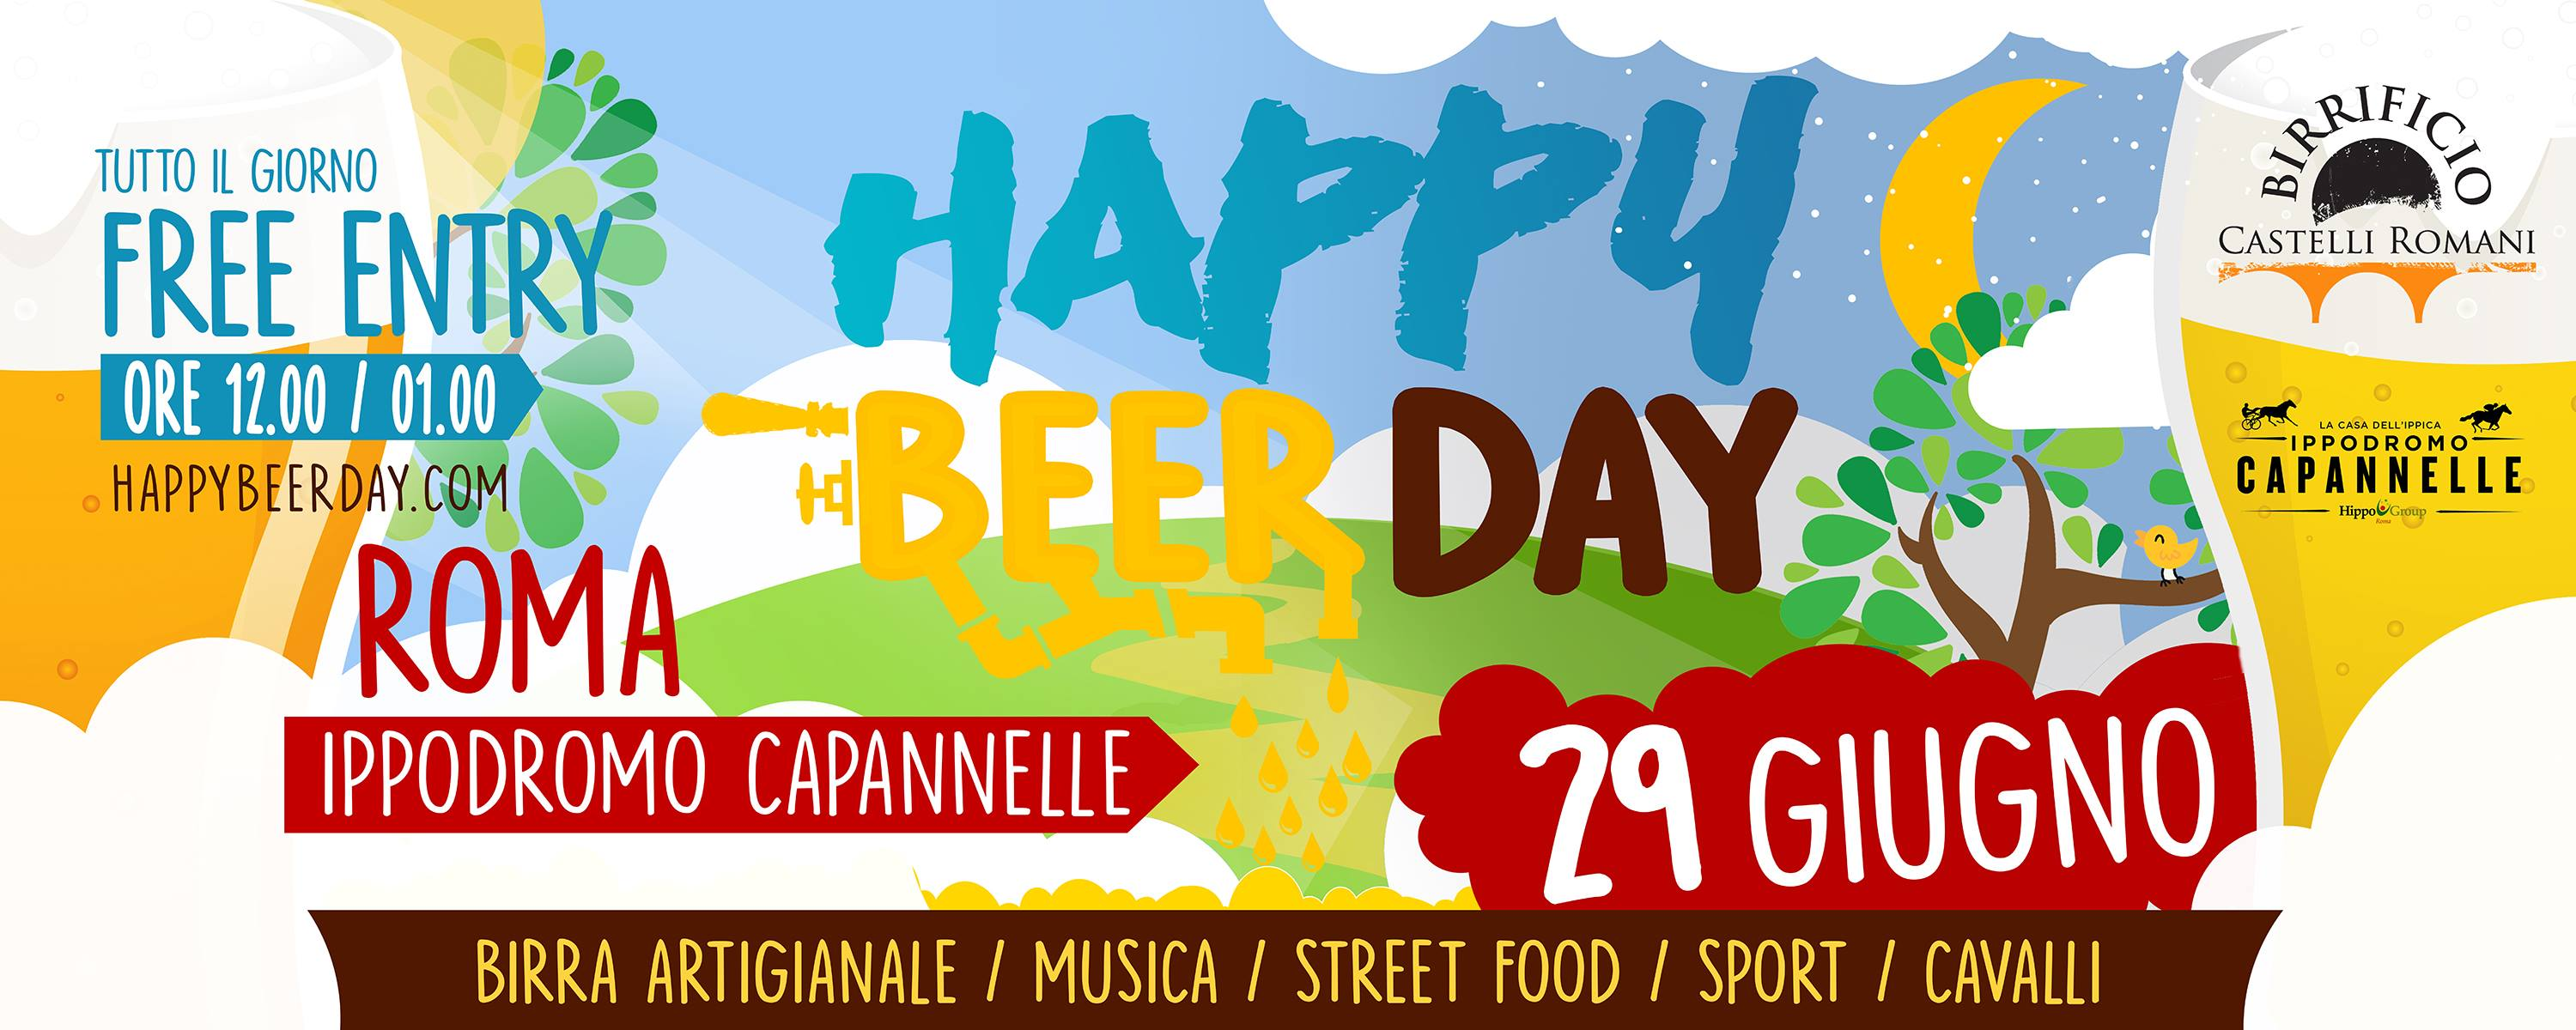 Il campione Gabriele Casella all'Happy Beer Day a Capannelle